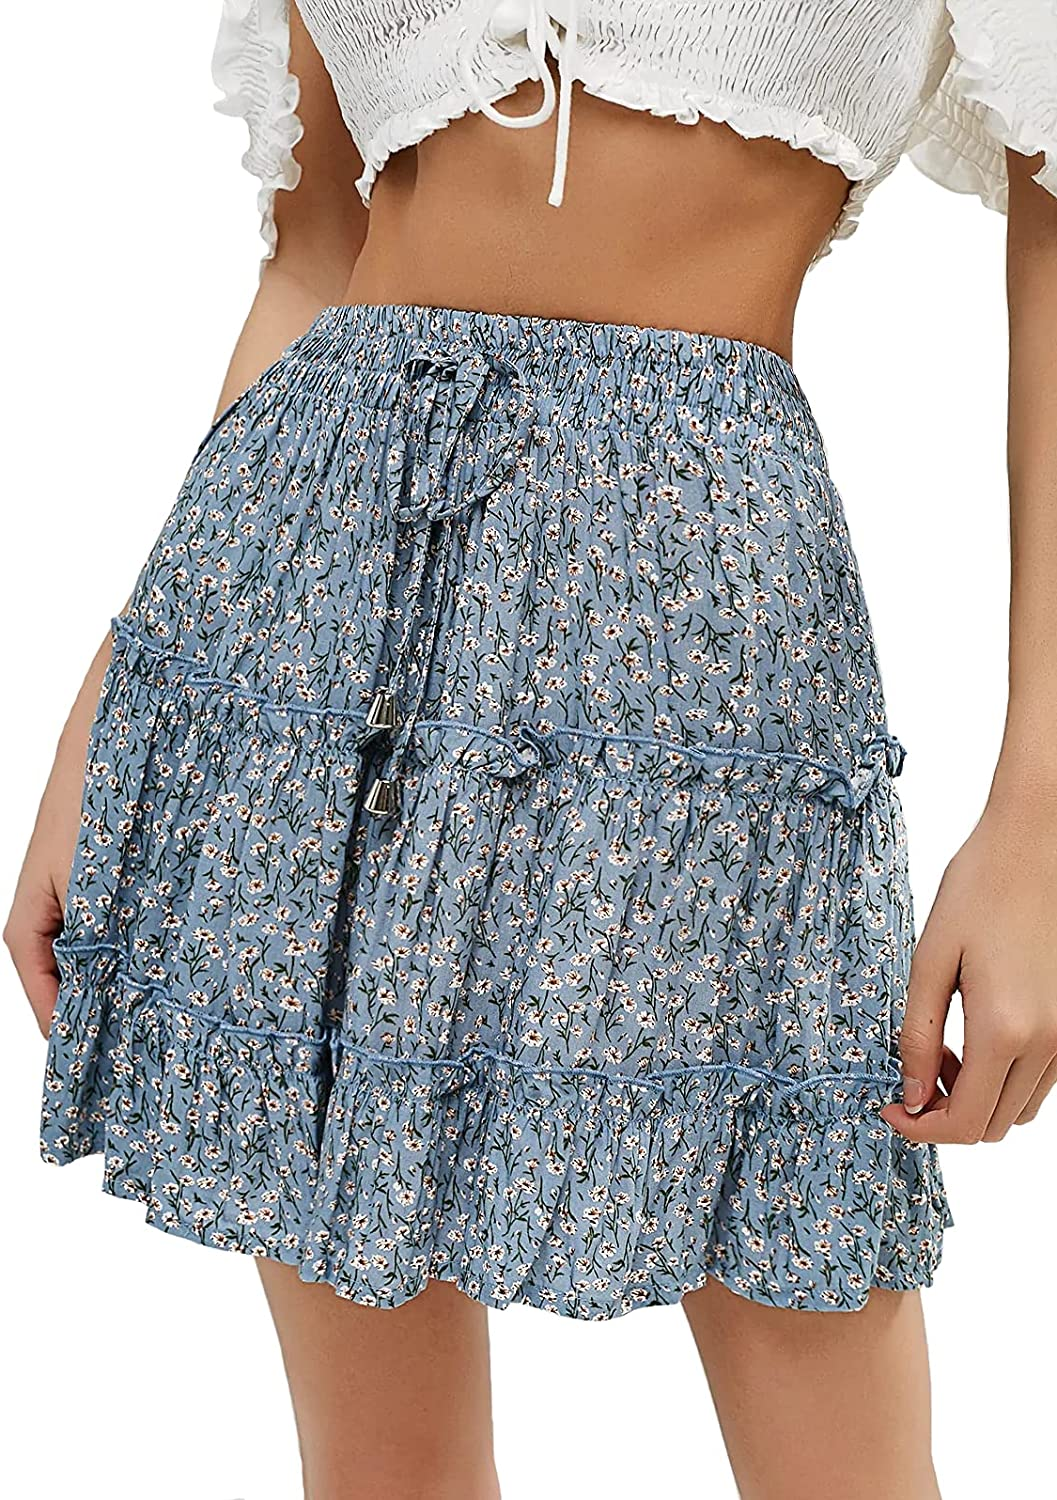 fancy-mano Women's Ruffle Online limited product Surprise price Mini Skirt Stretch Flared Floral Waist